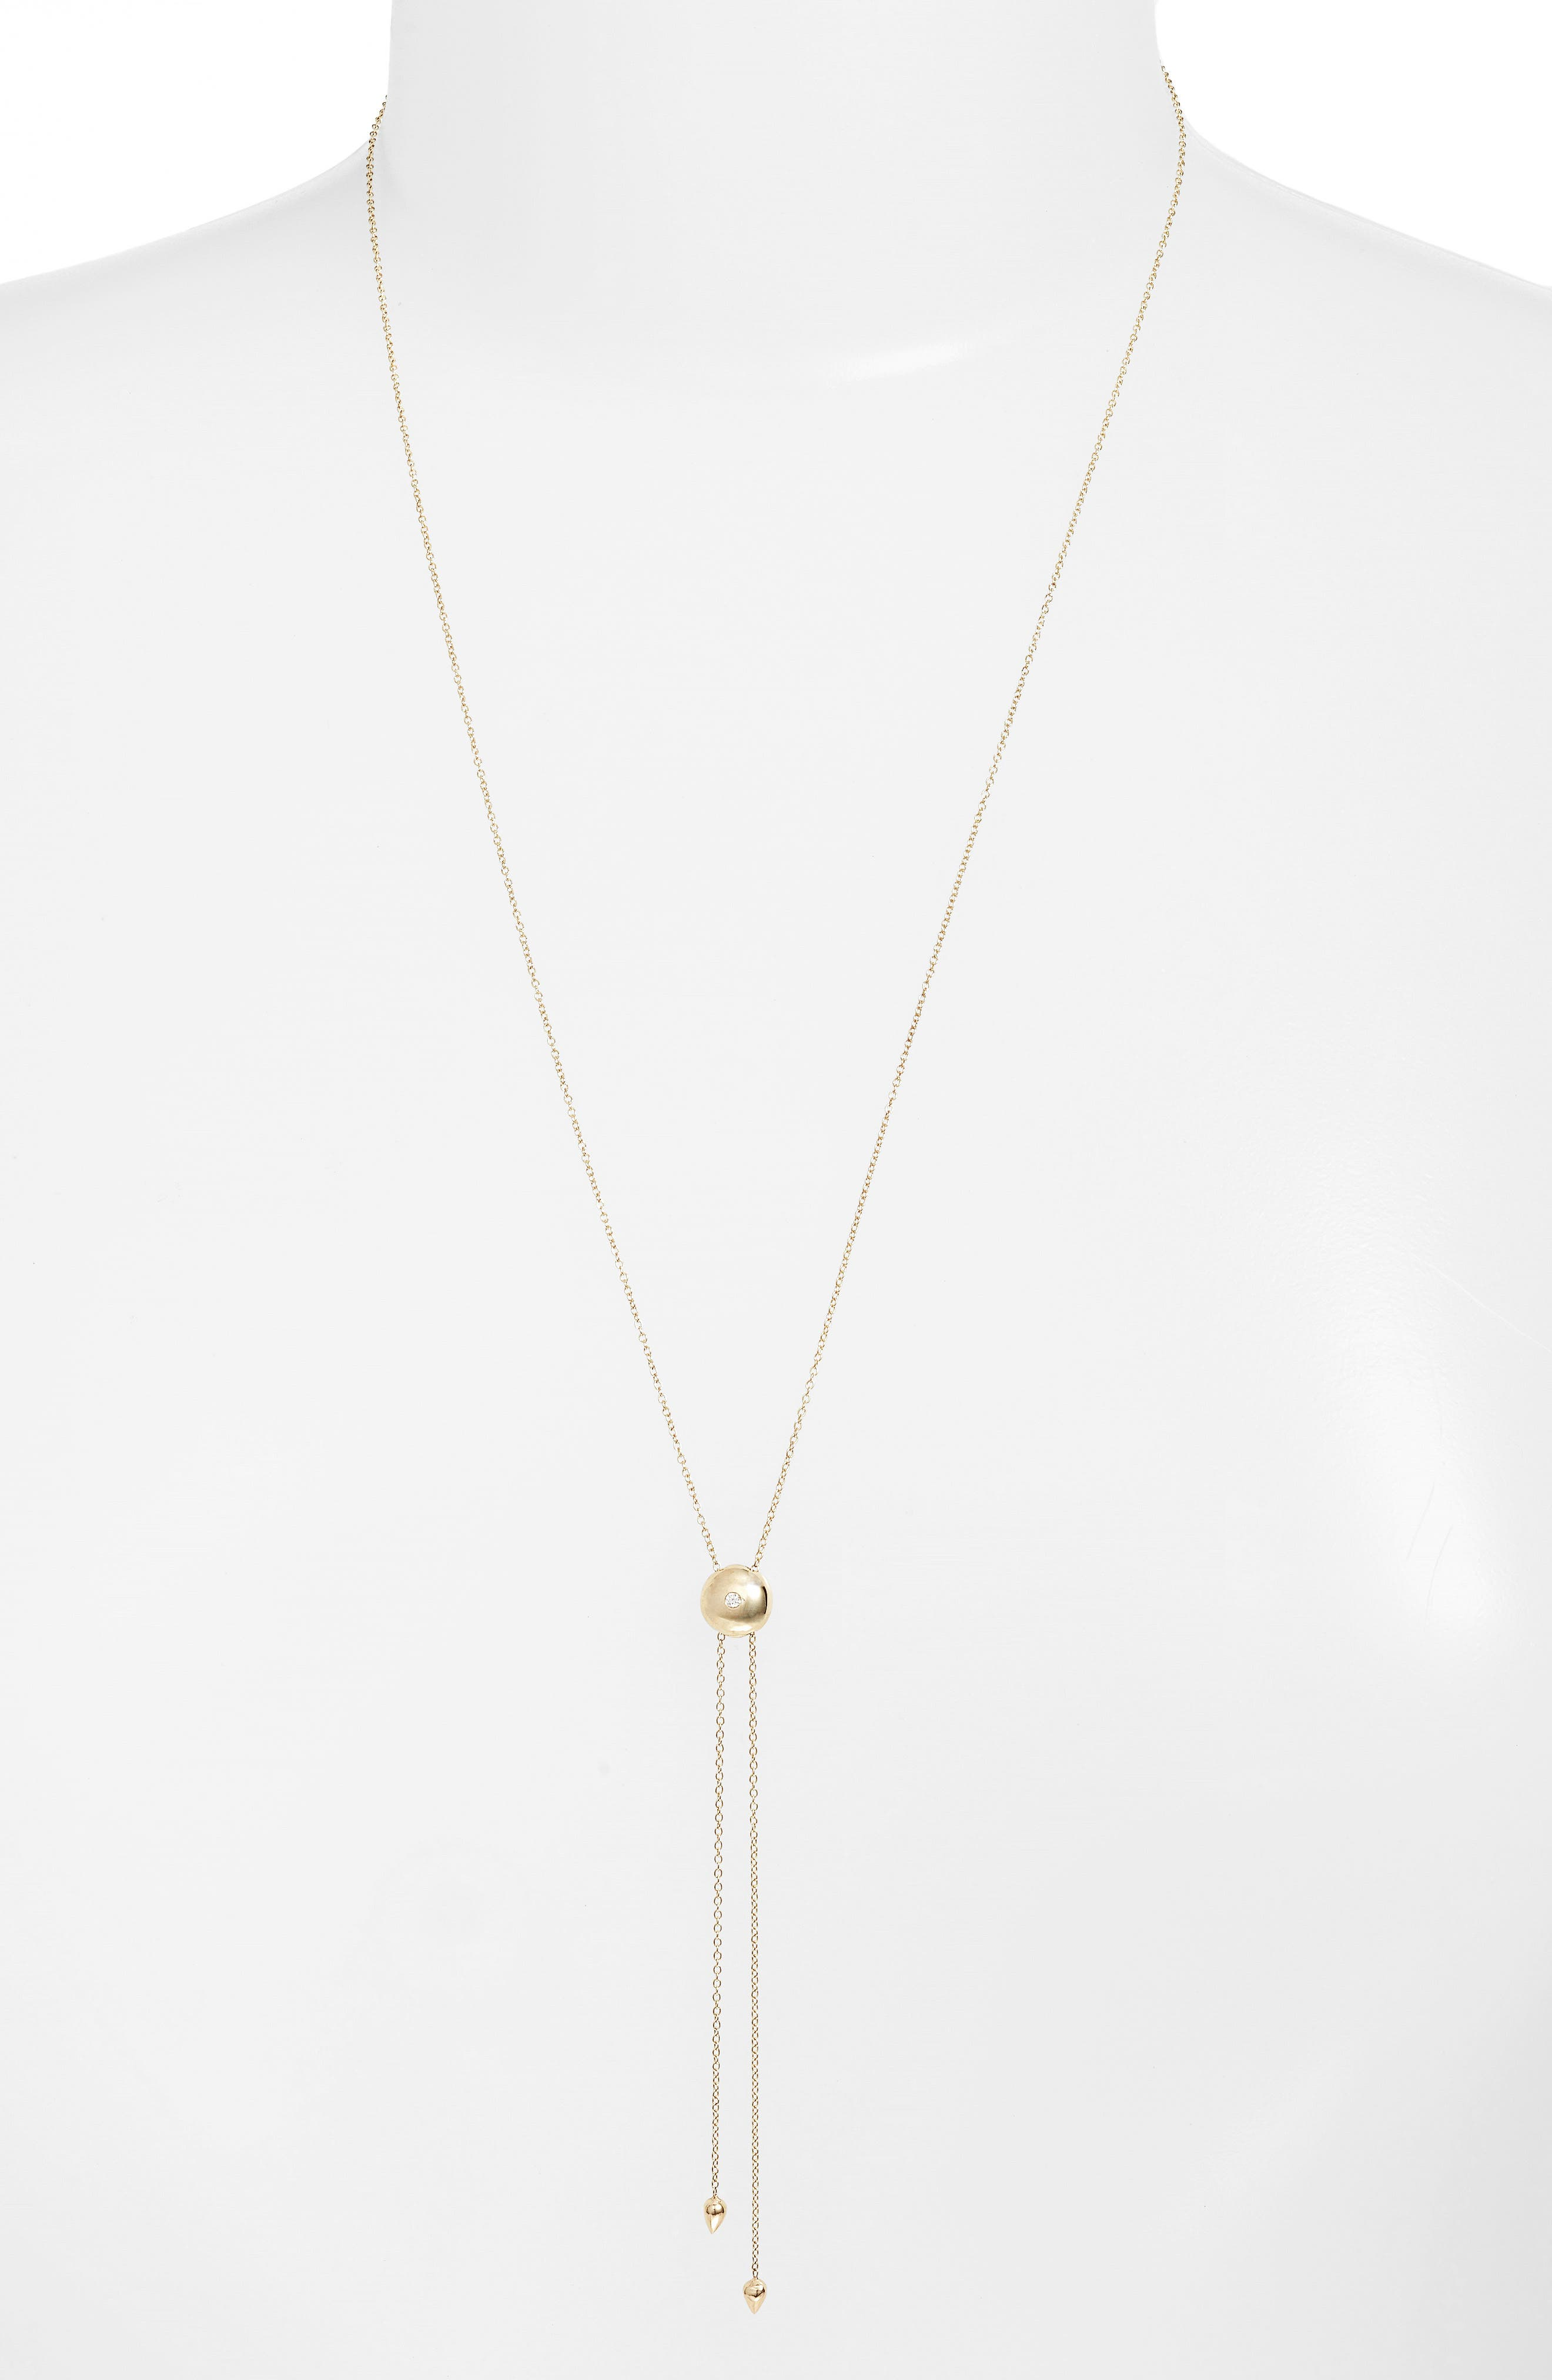 Diamond Lariat Necklace,                         Main,                         color, Yellow Gold